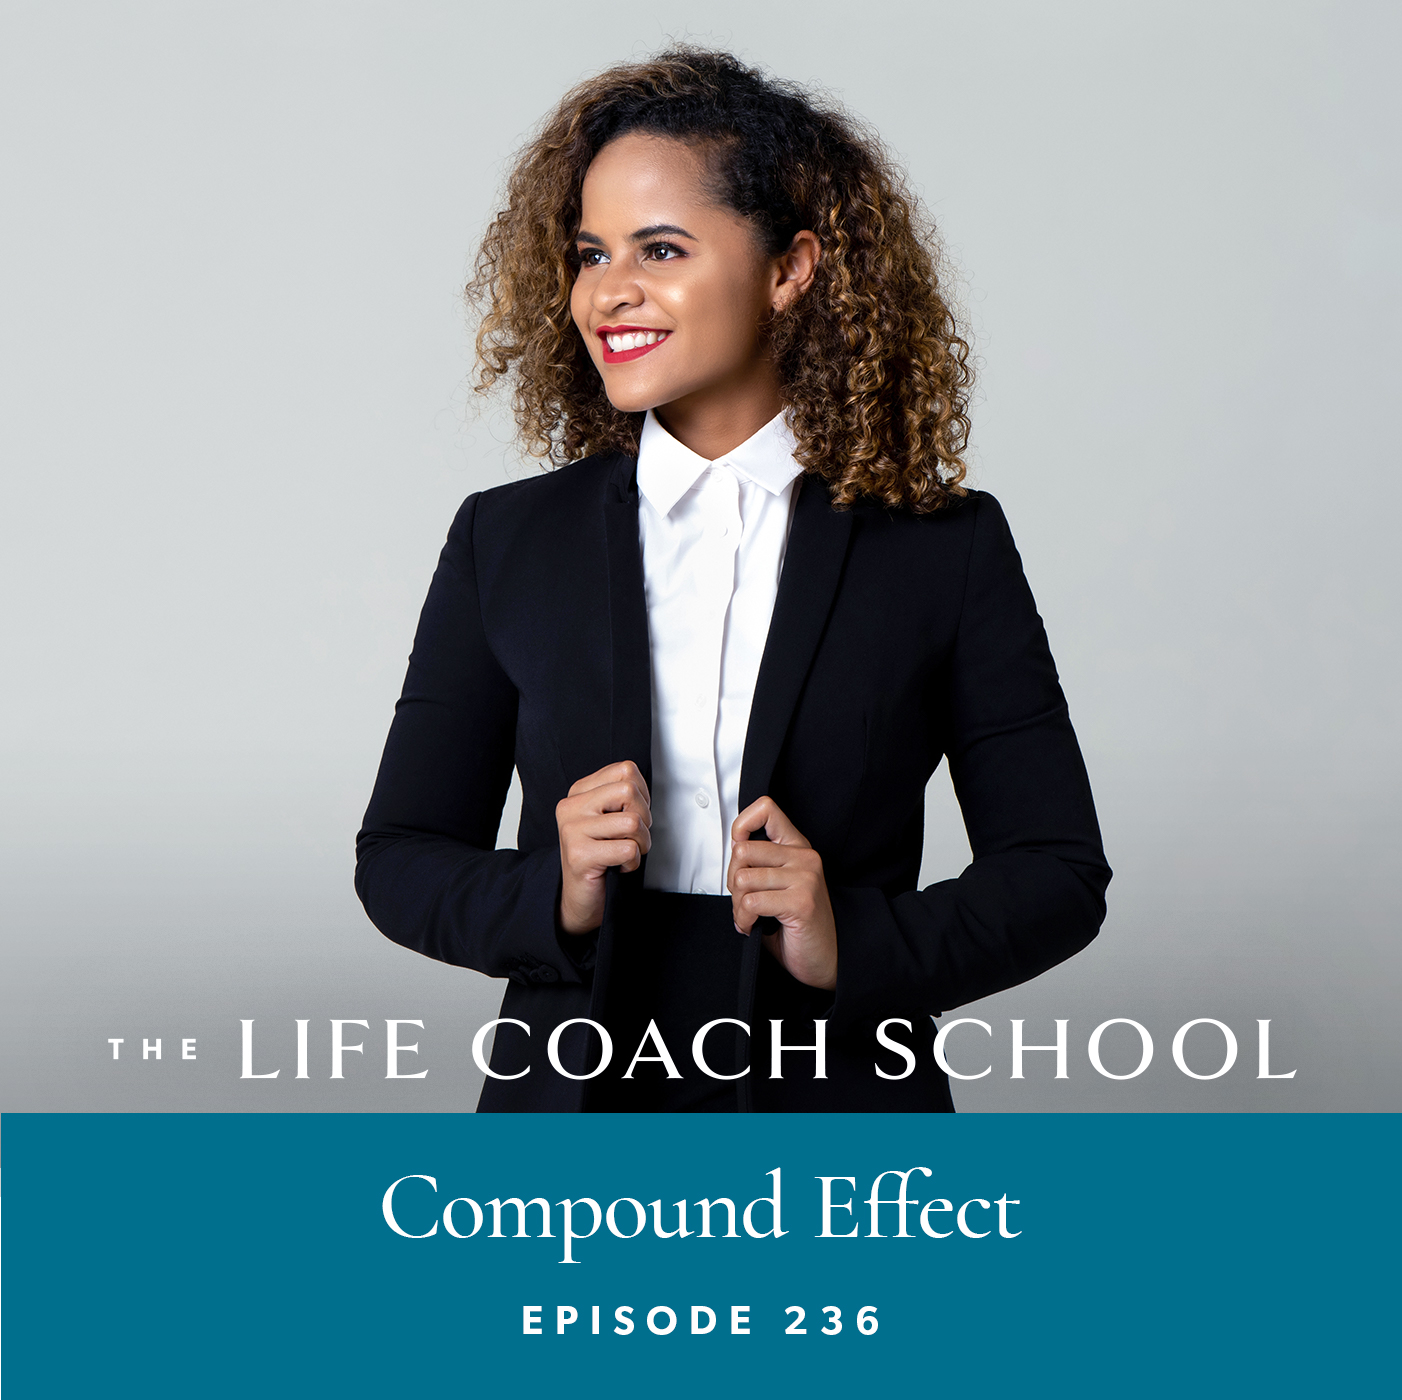 The Life Coach School Podcast with Brooke Castillo | Episode 236 | Compound Effect